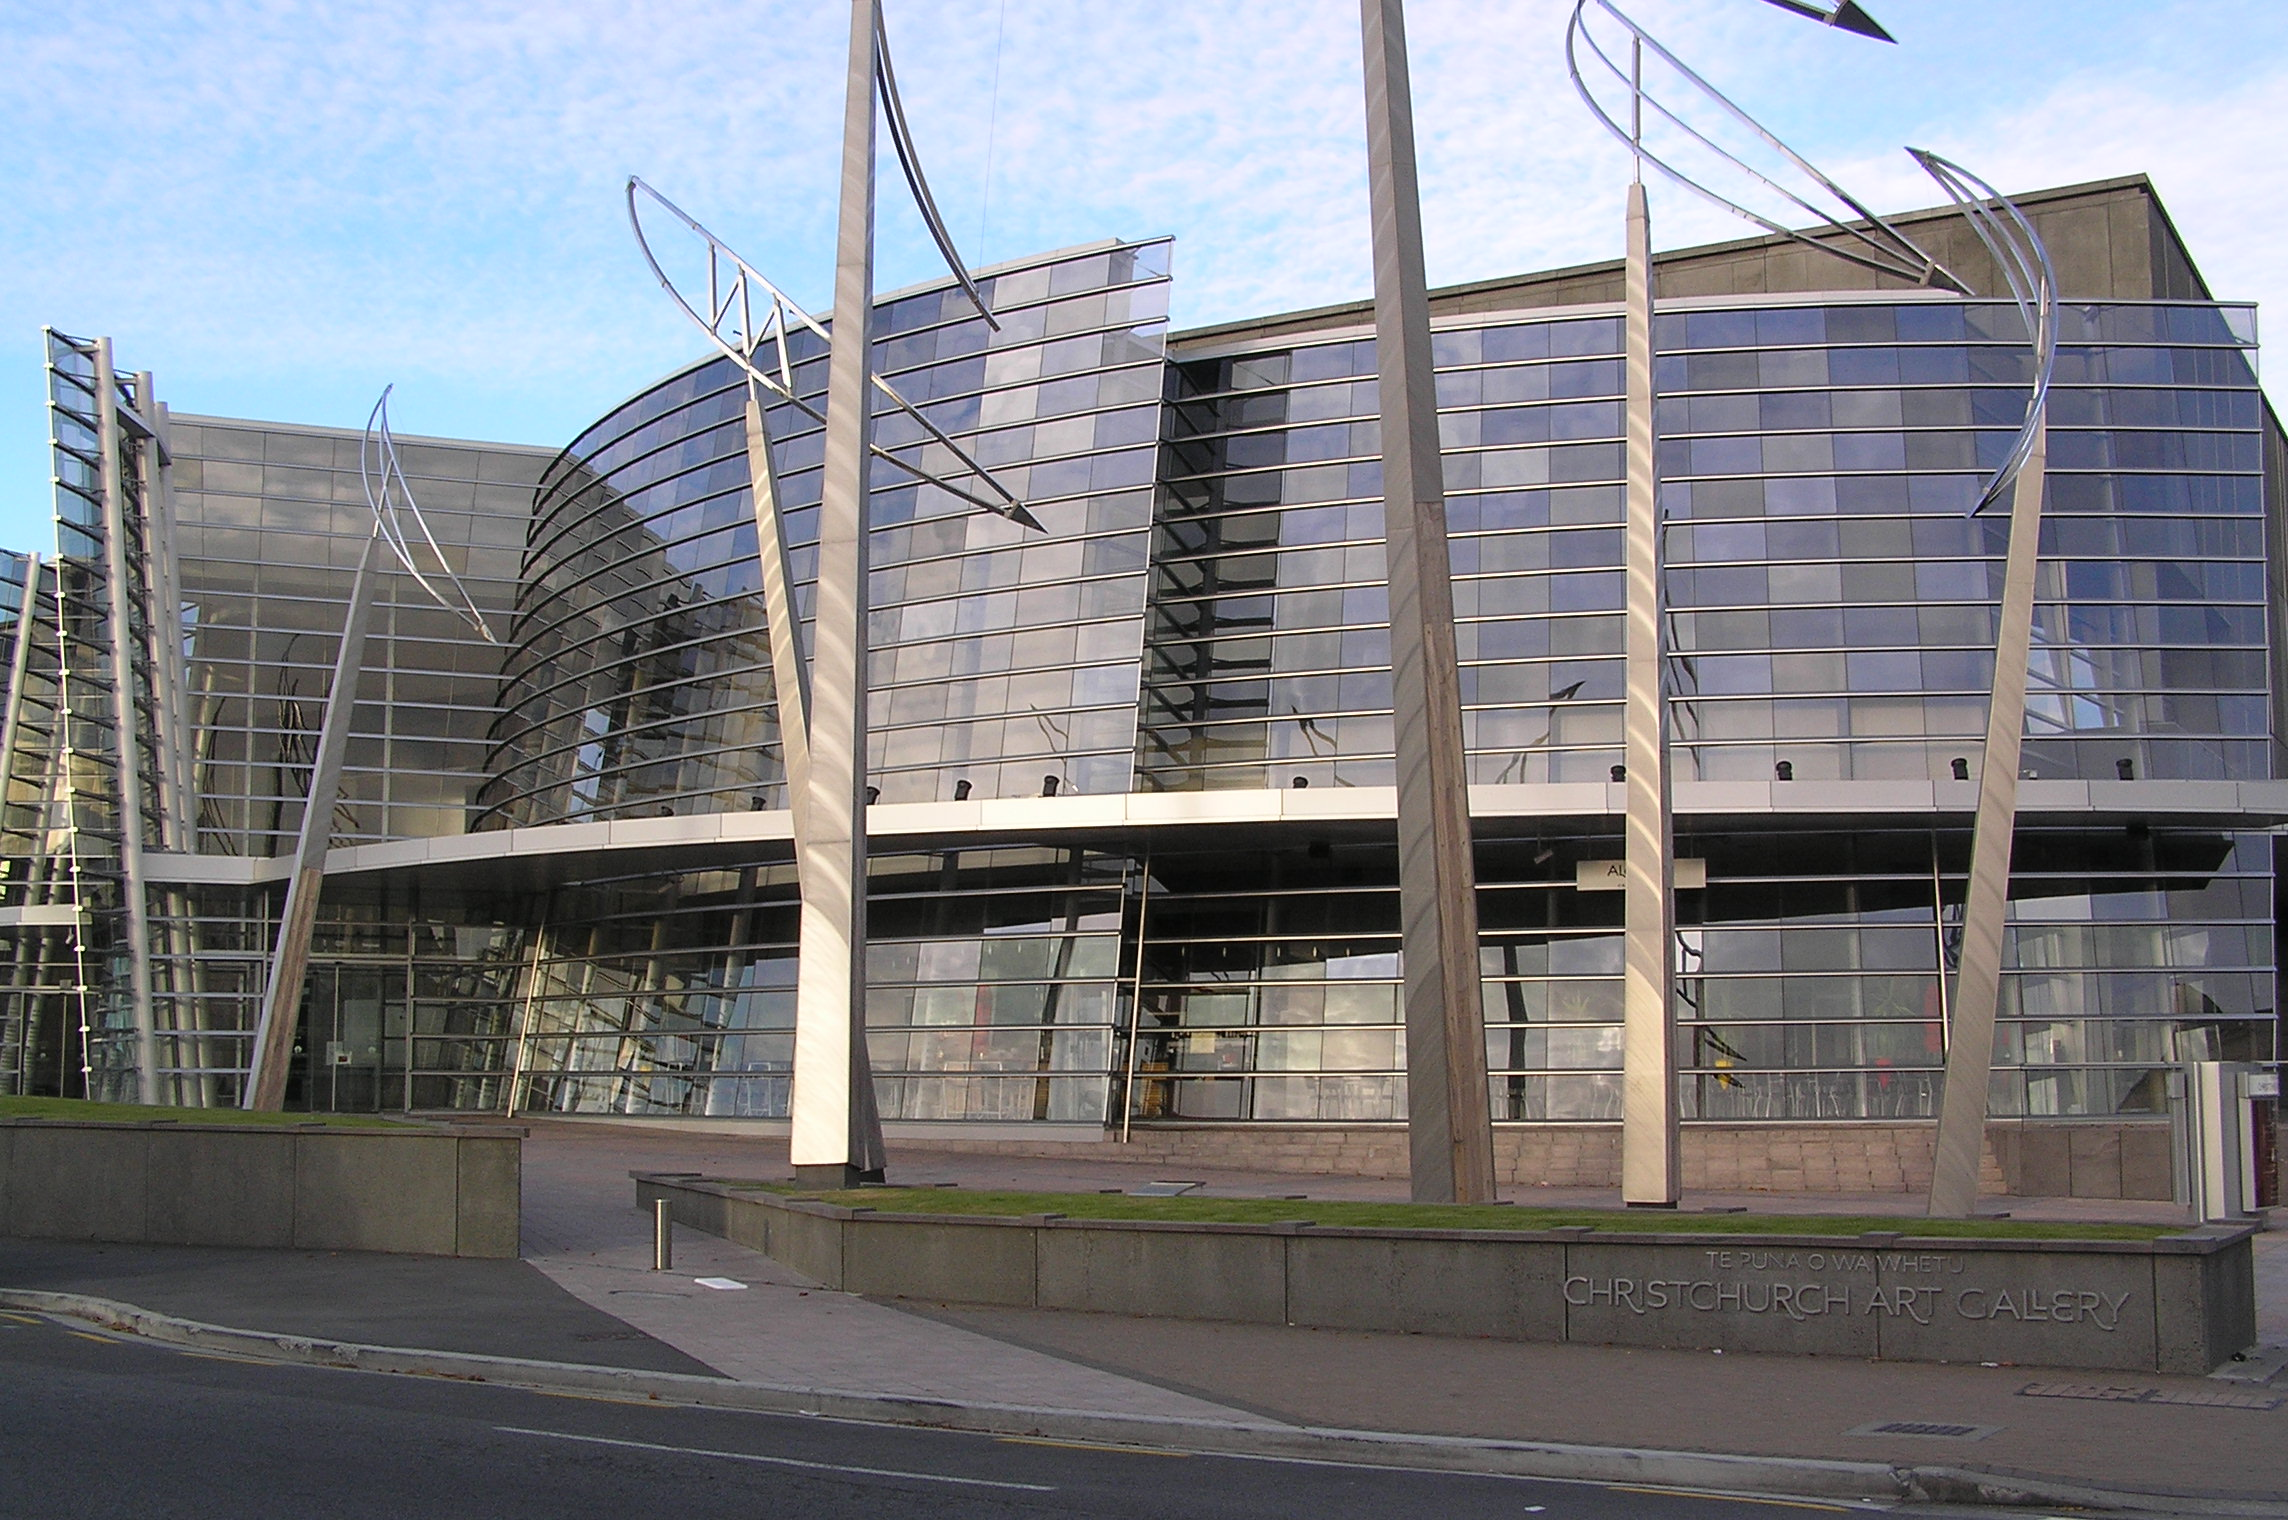 File:Christchurch Art Gallery (Christchurch, New Zealand